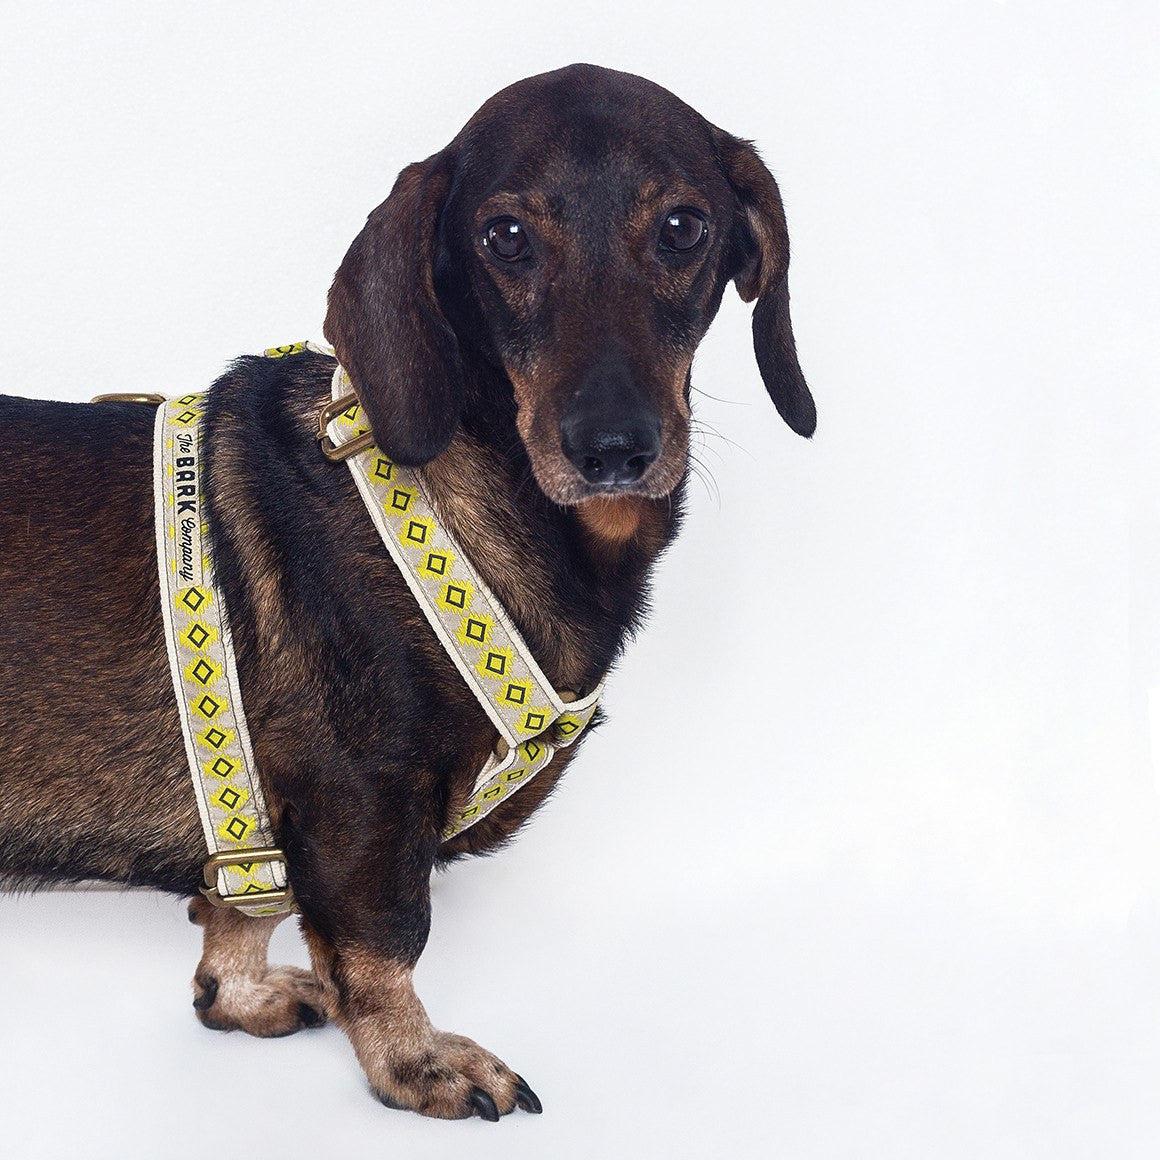 Chantico dog harness from The Bark Co - 1